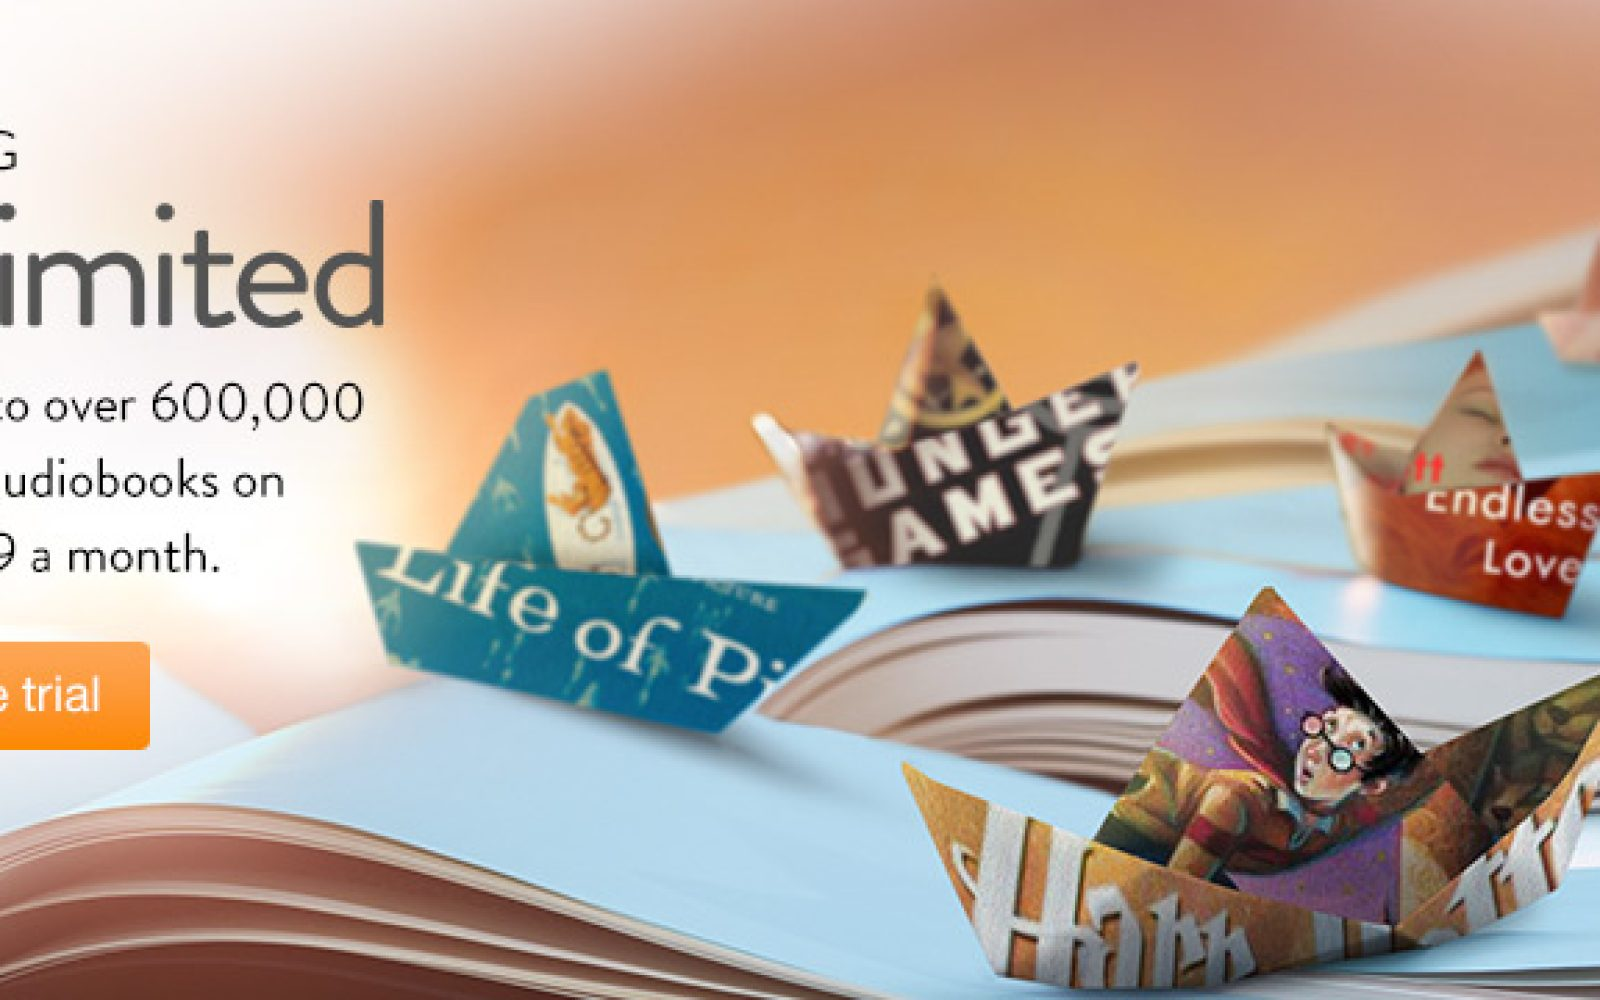 Amazon's unlimited ebook and audiobook subscription service